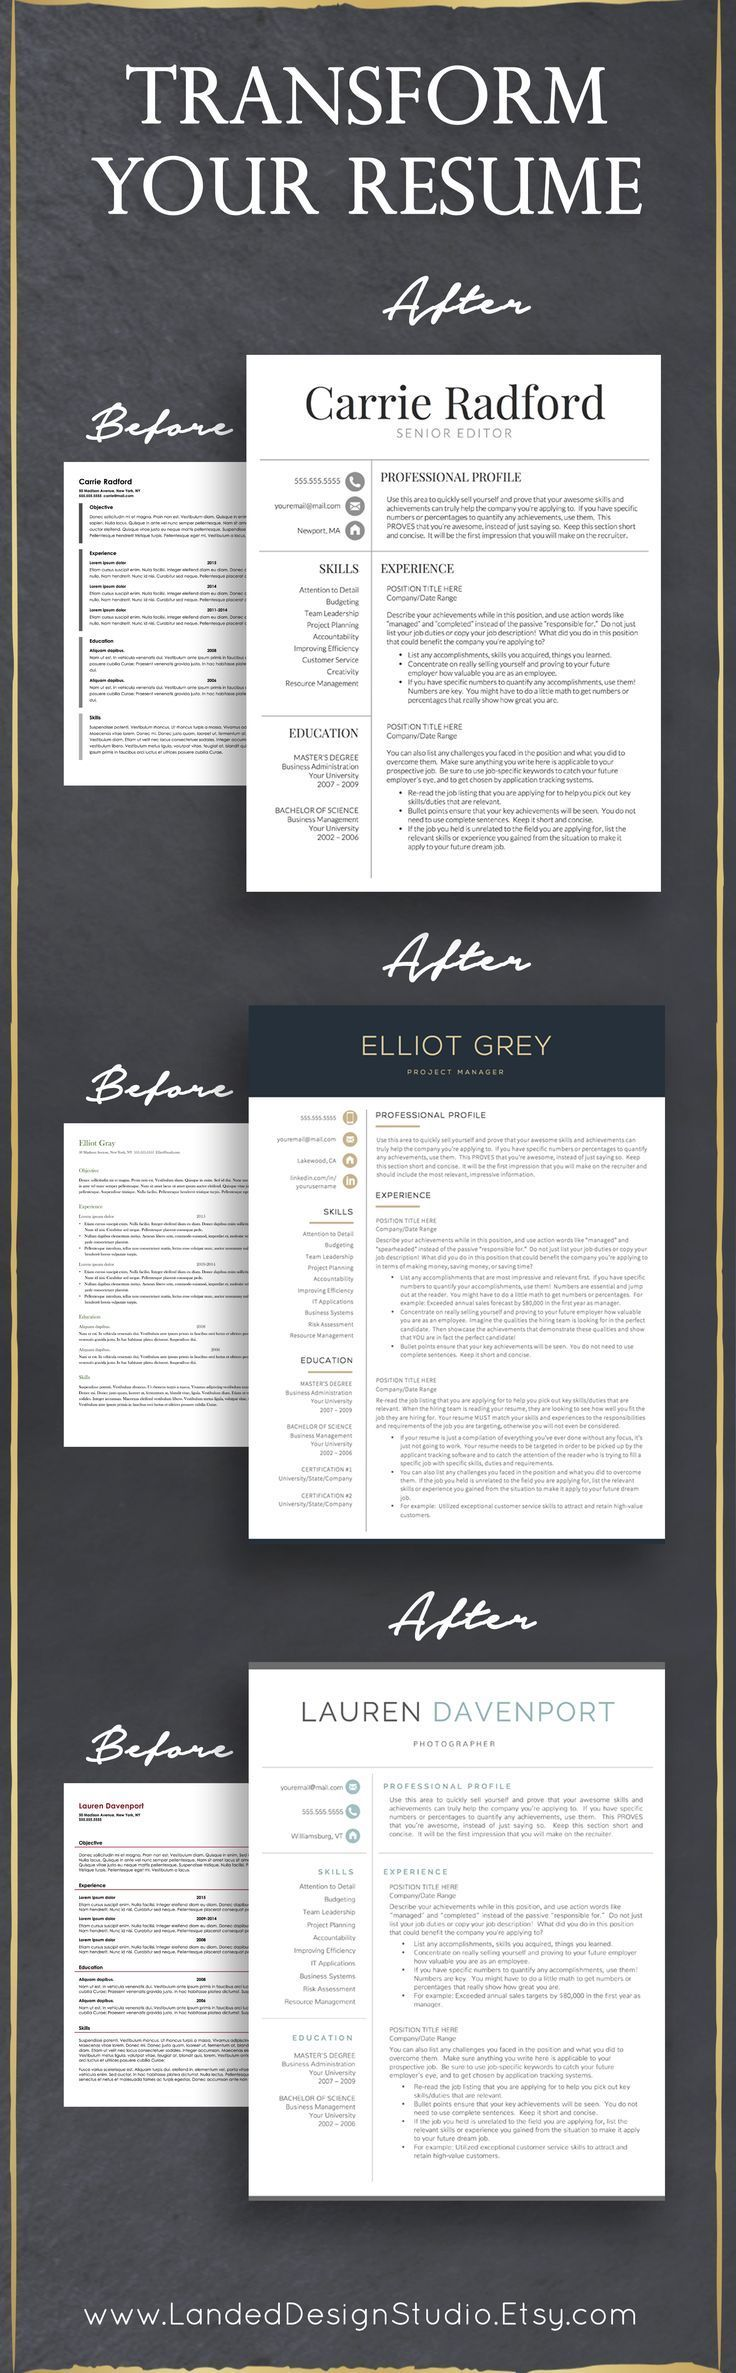 College Resume Tips Pleasing Completely Transform Your Resume With A Professional Resume Template .